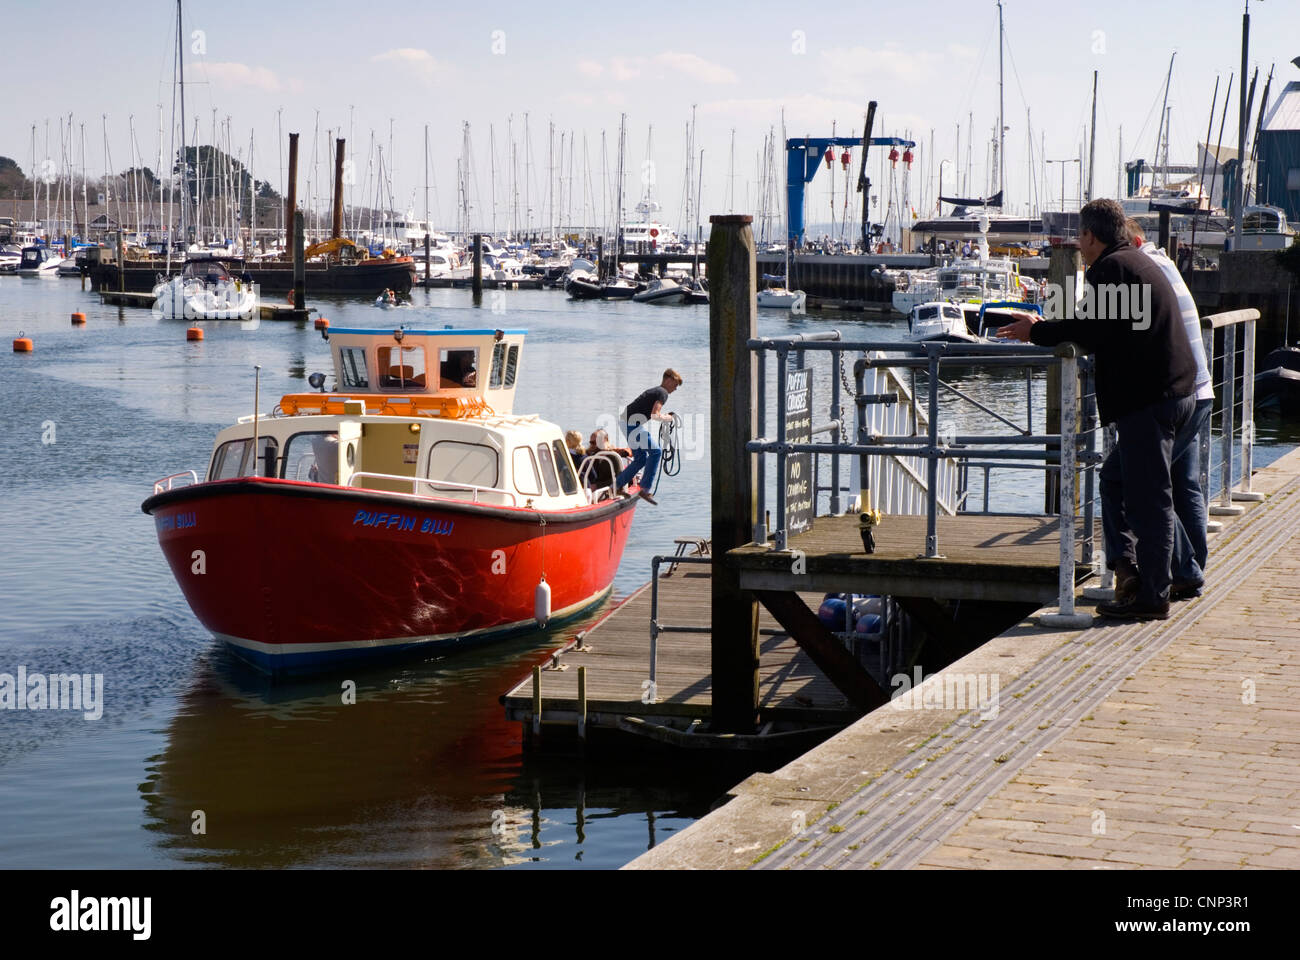 Lymington harbour - boat trip mooring - boy leaping ashore with rope - a decisive moment - passers by watching - Stock Image